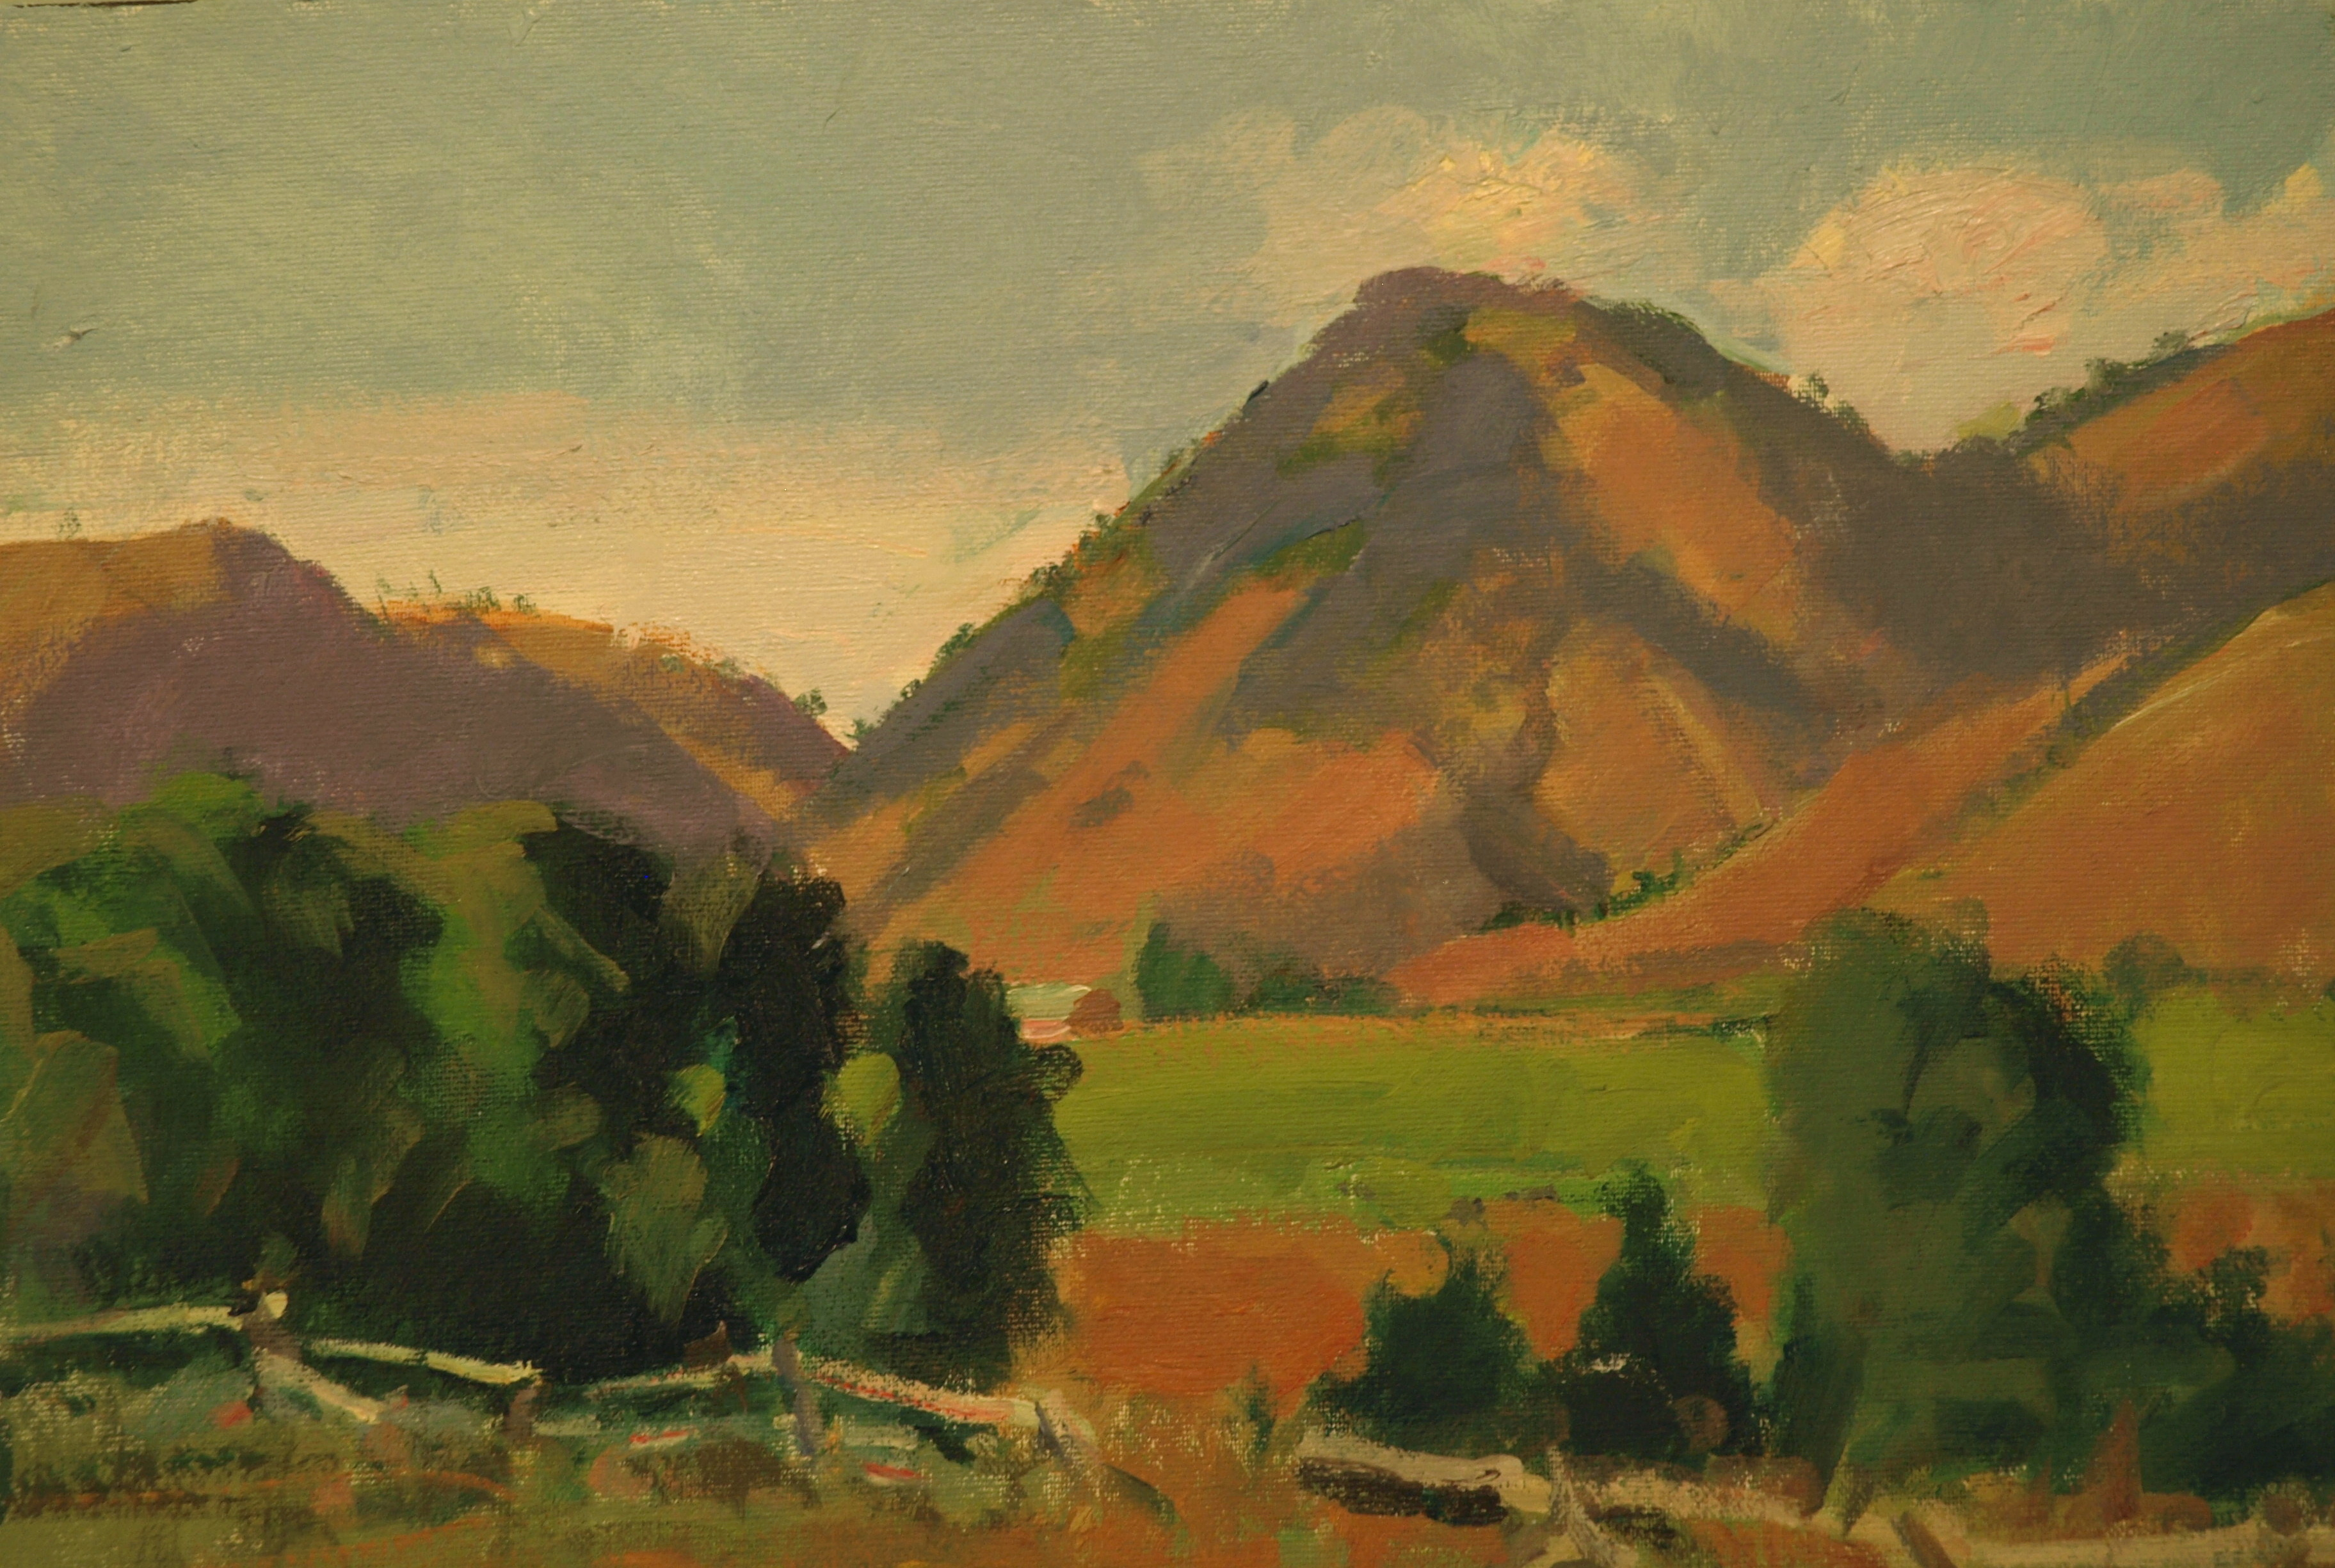 At Ranch Alegre, Oil on Canvas on Panel, 12 x 16 Inches, by Susan Grisell, $275